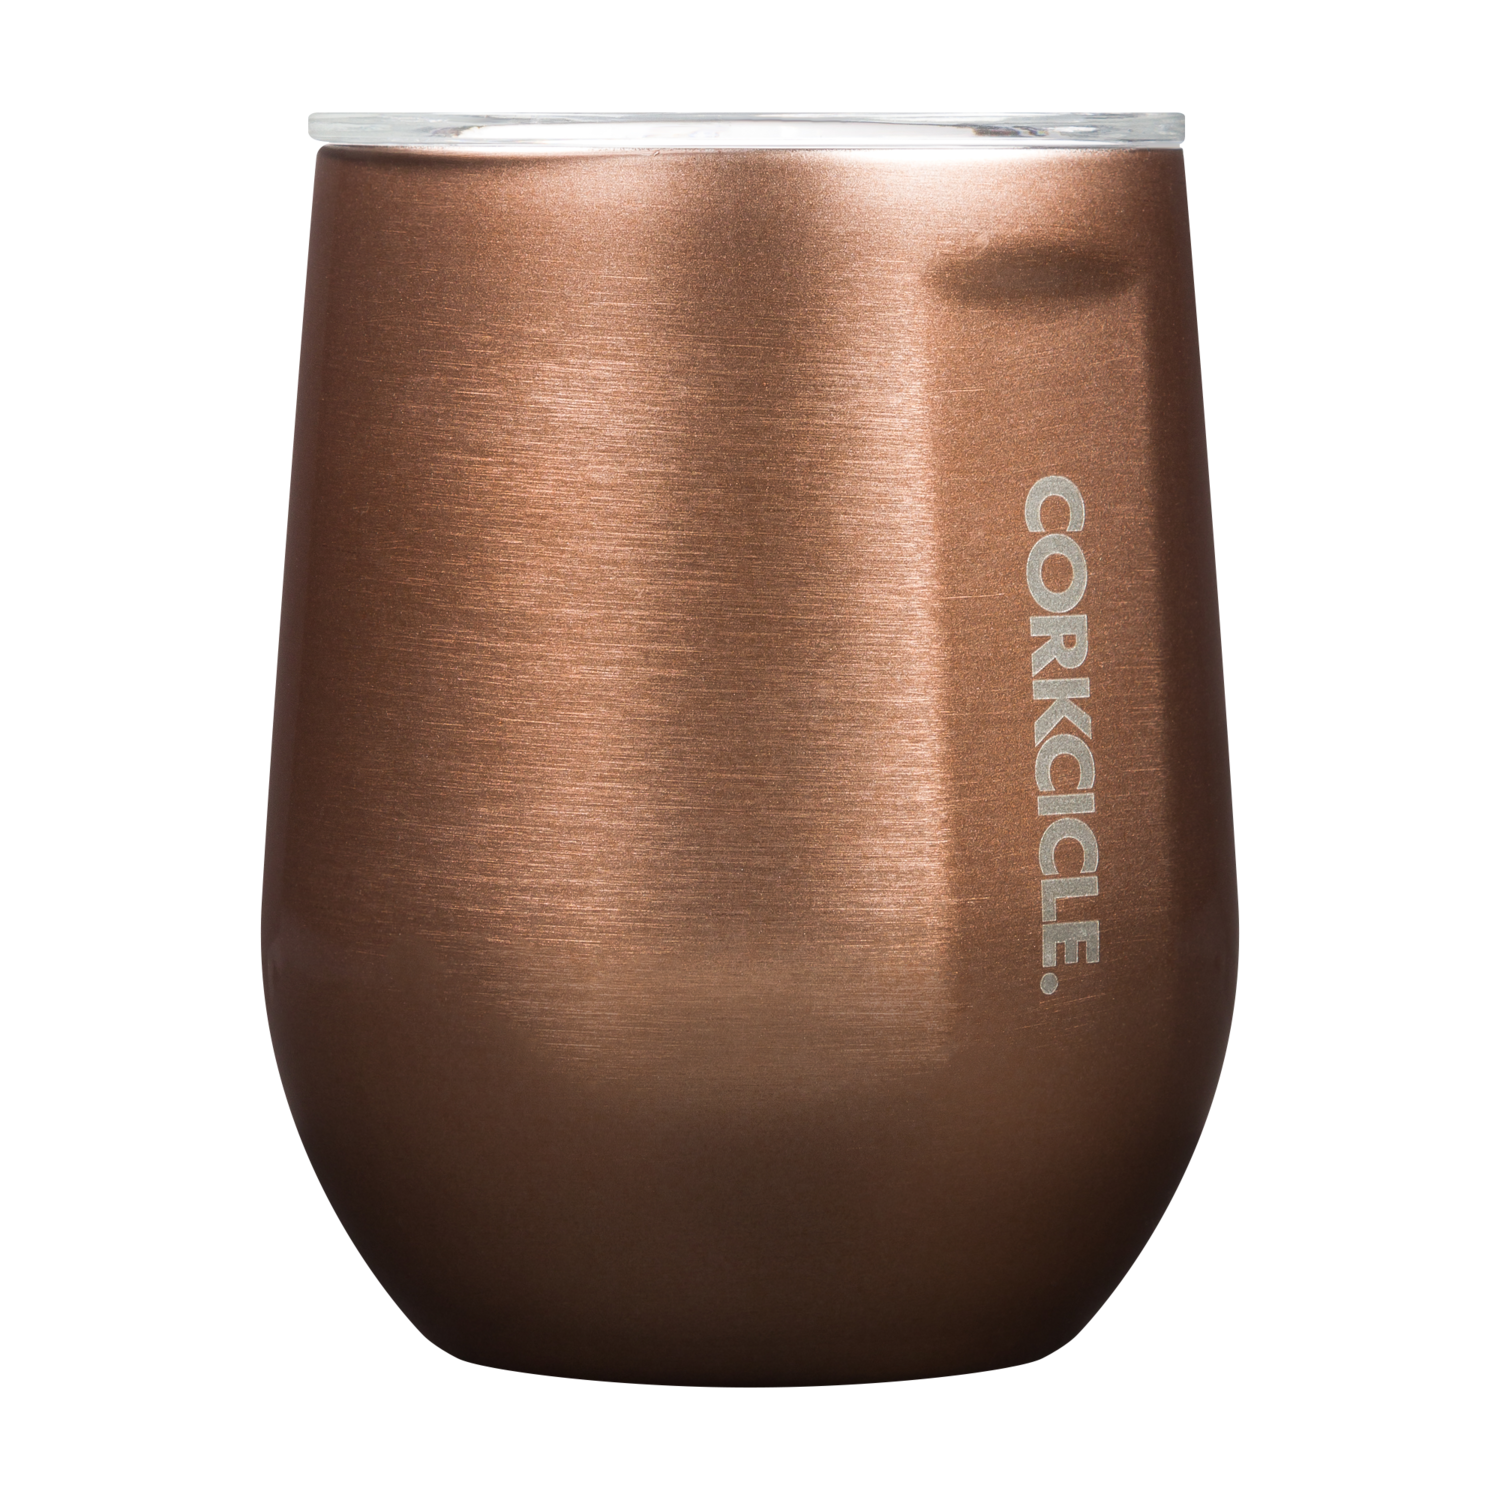 thermo bottle product photography